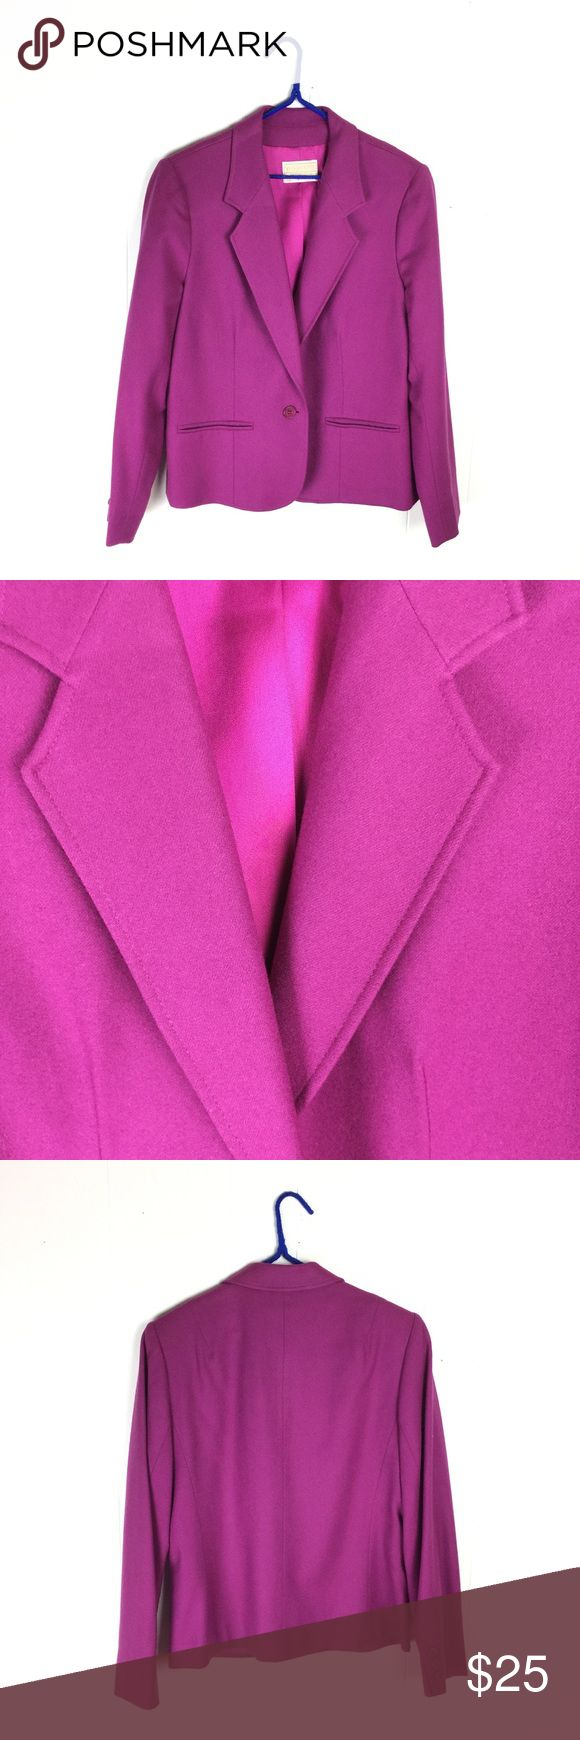 "Vintage Pendleton Magenta Purple Blazer Jacket 12 Vintage Pendleton Blazer in Magenta purple/pink. Satin lined. Very good condition. Shell 100% wool. USA. Size 12. Apx: 24"" long. 20"" underarm to underarm. Pendleton Jackets & Coats Blazers"